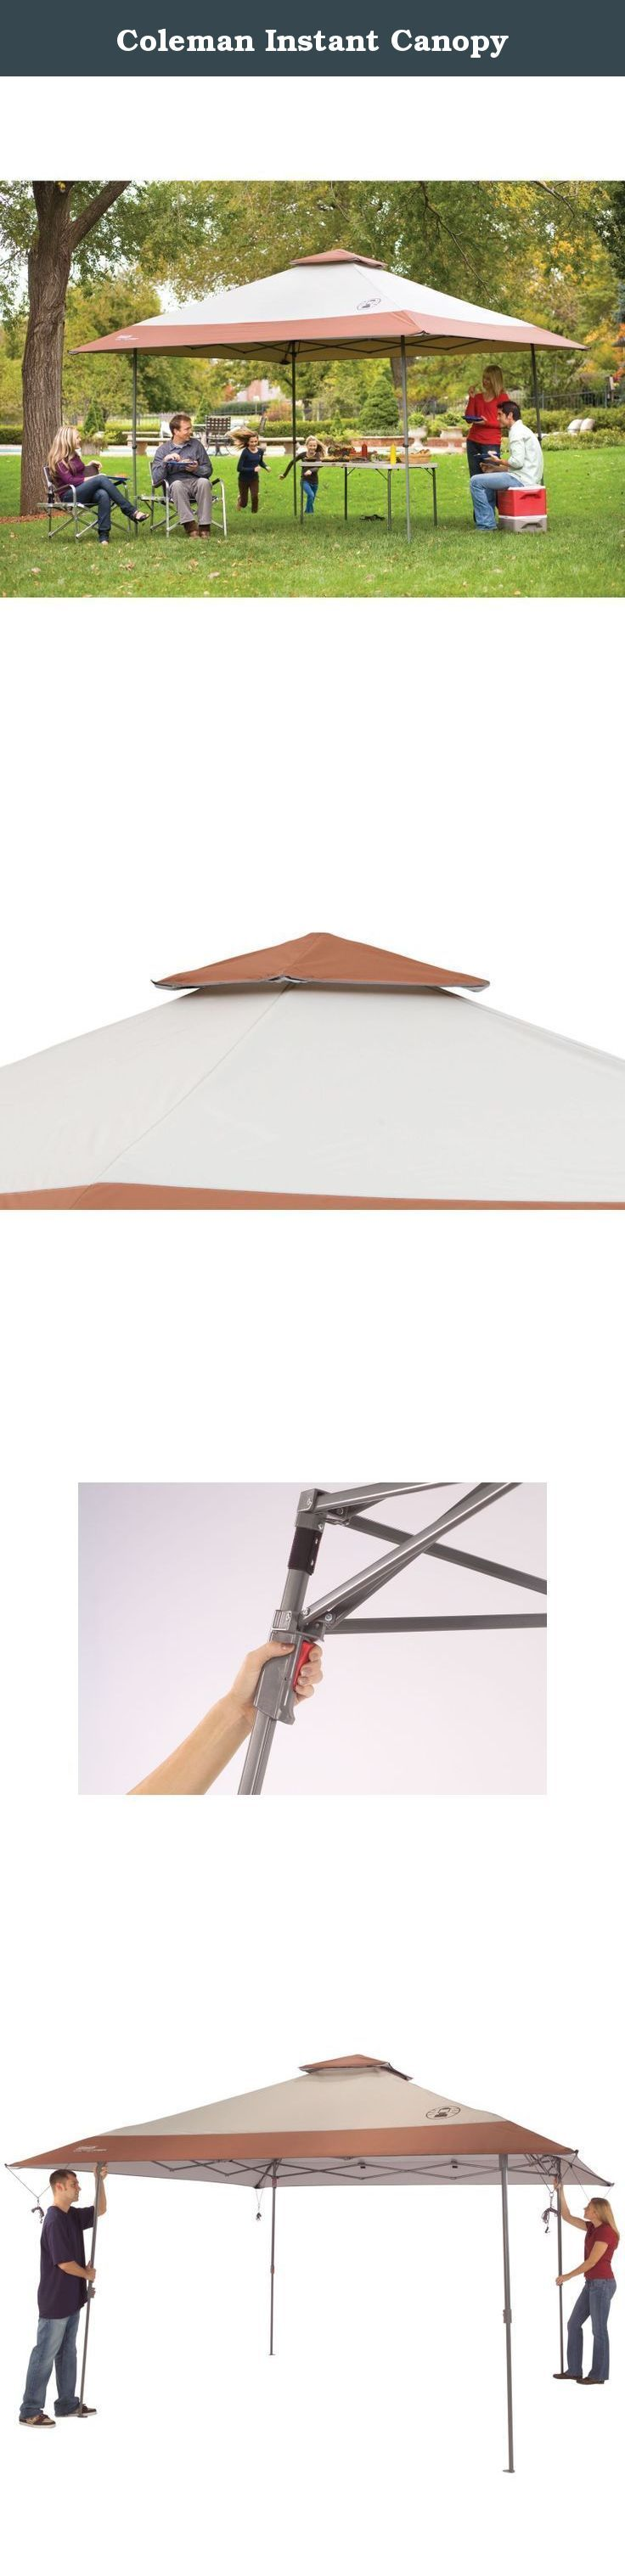 Coleman Instant Canopy.